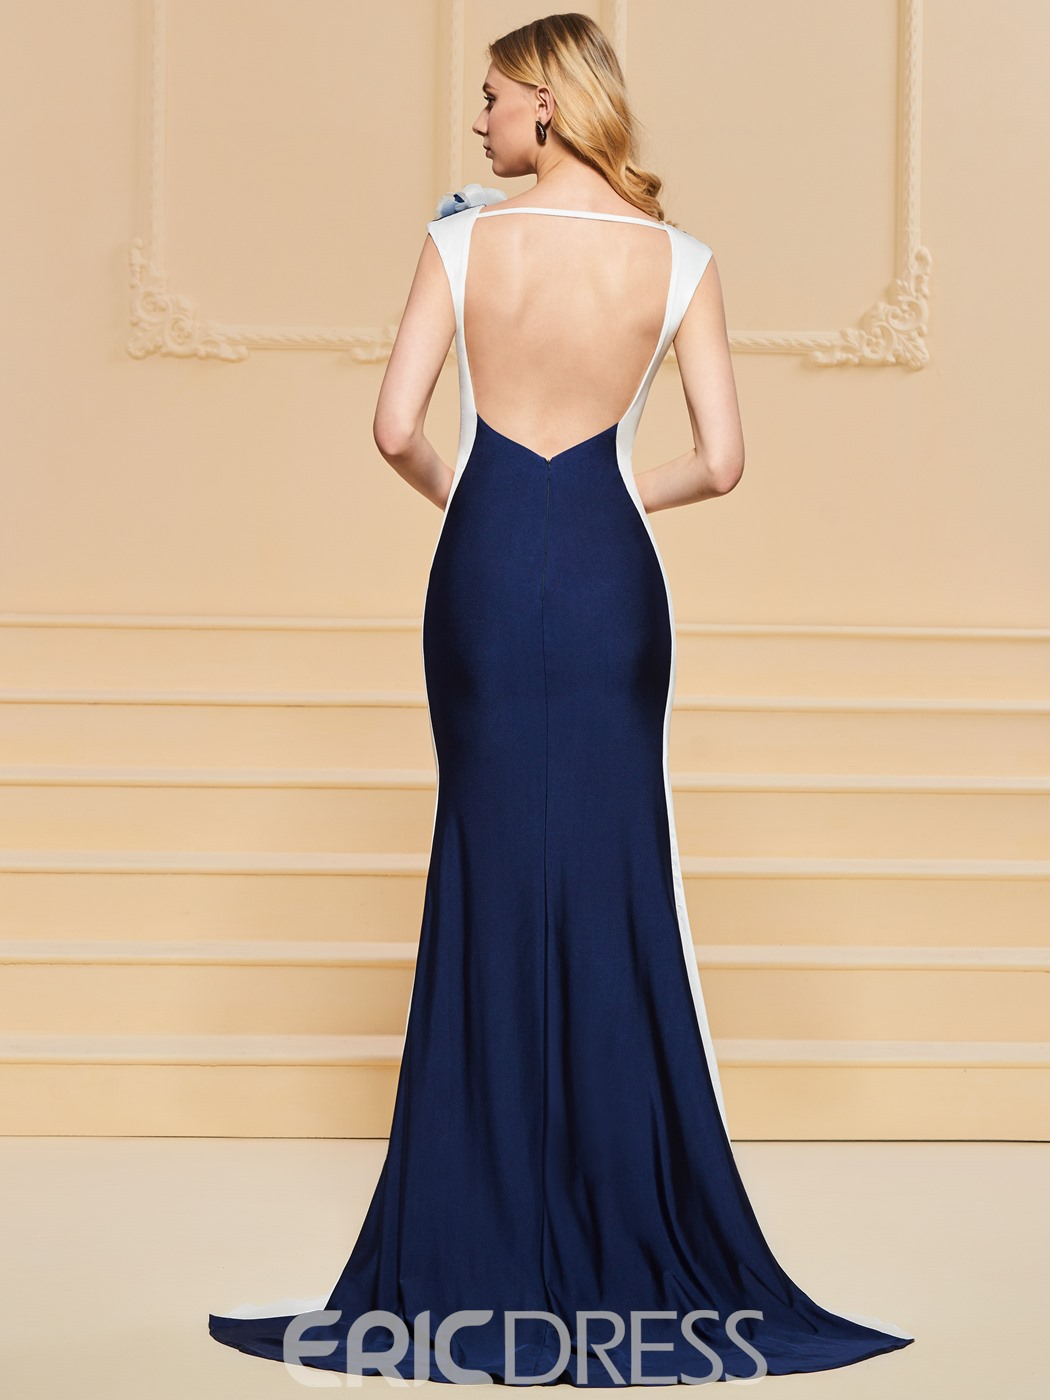 Ericdress Cap Sleeve Contrast Color Backless Mermaid Evening Dress